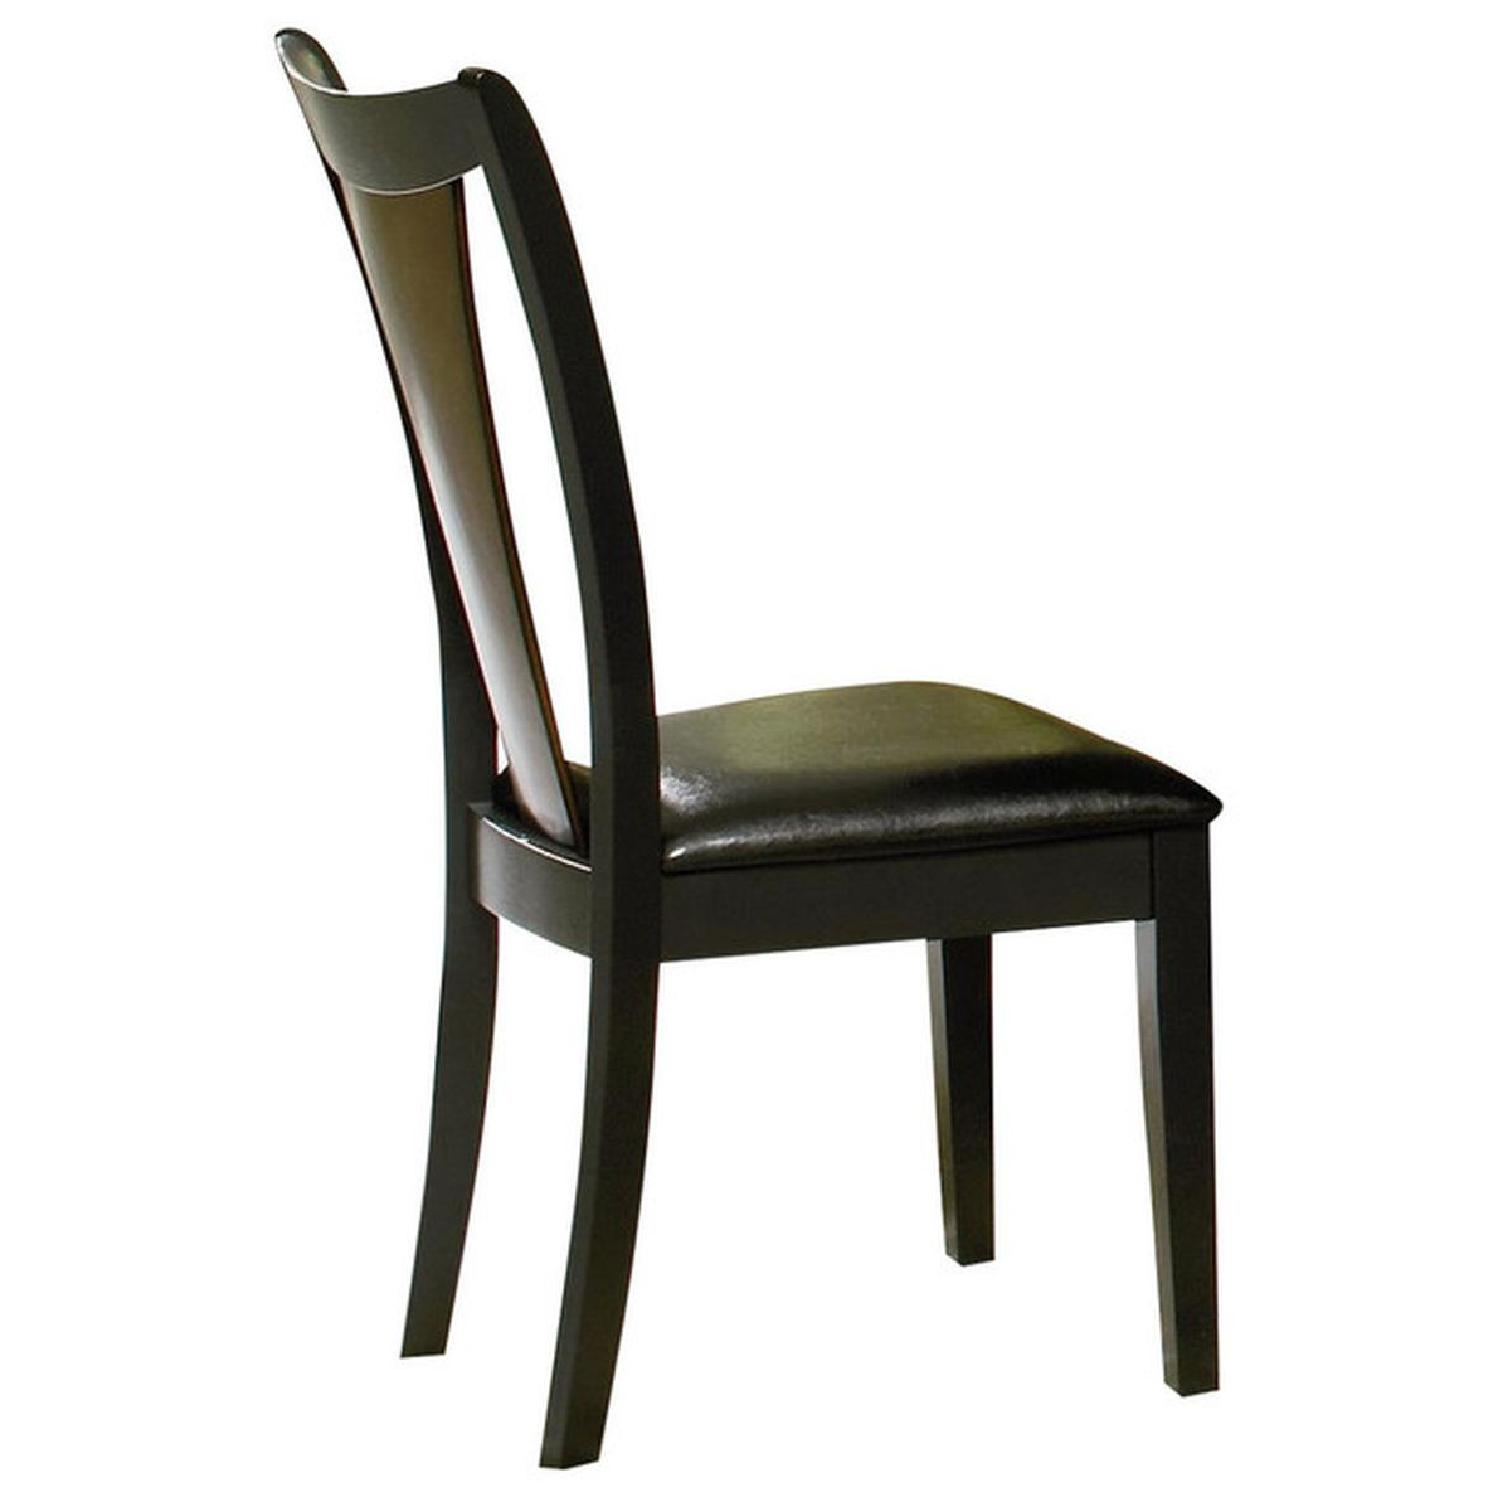 Dining Chair in 2-Tone Amber/Black Finish - image-1